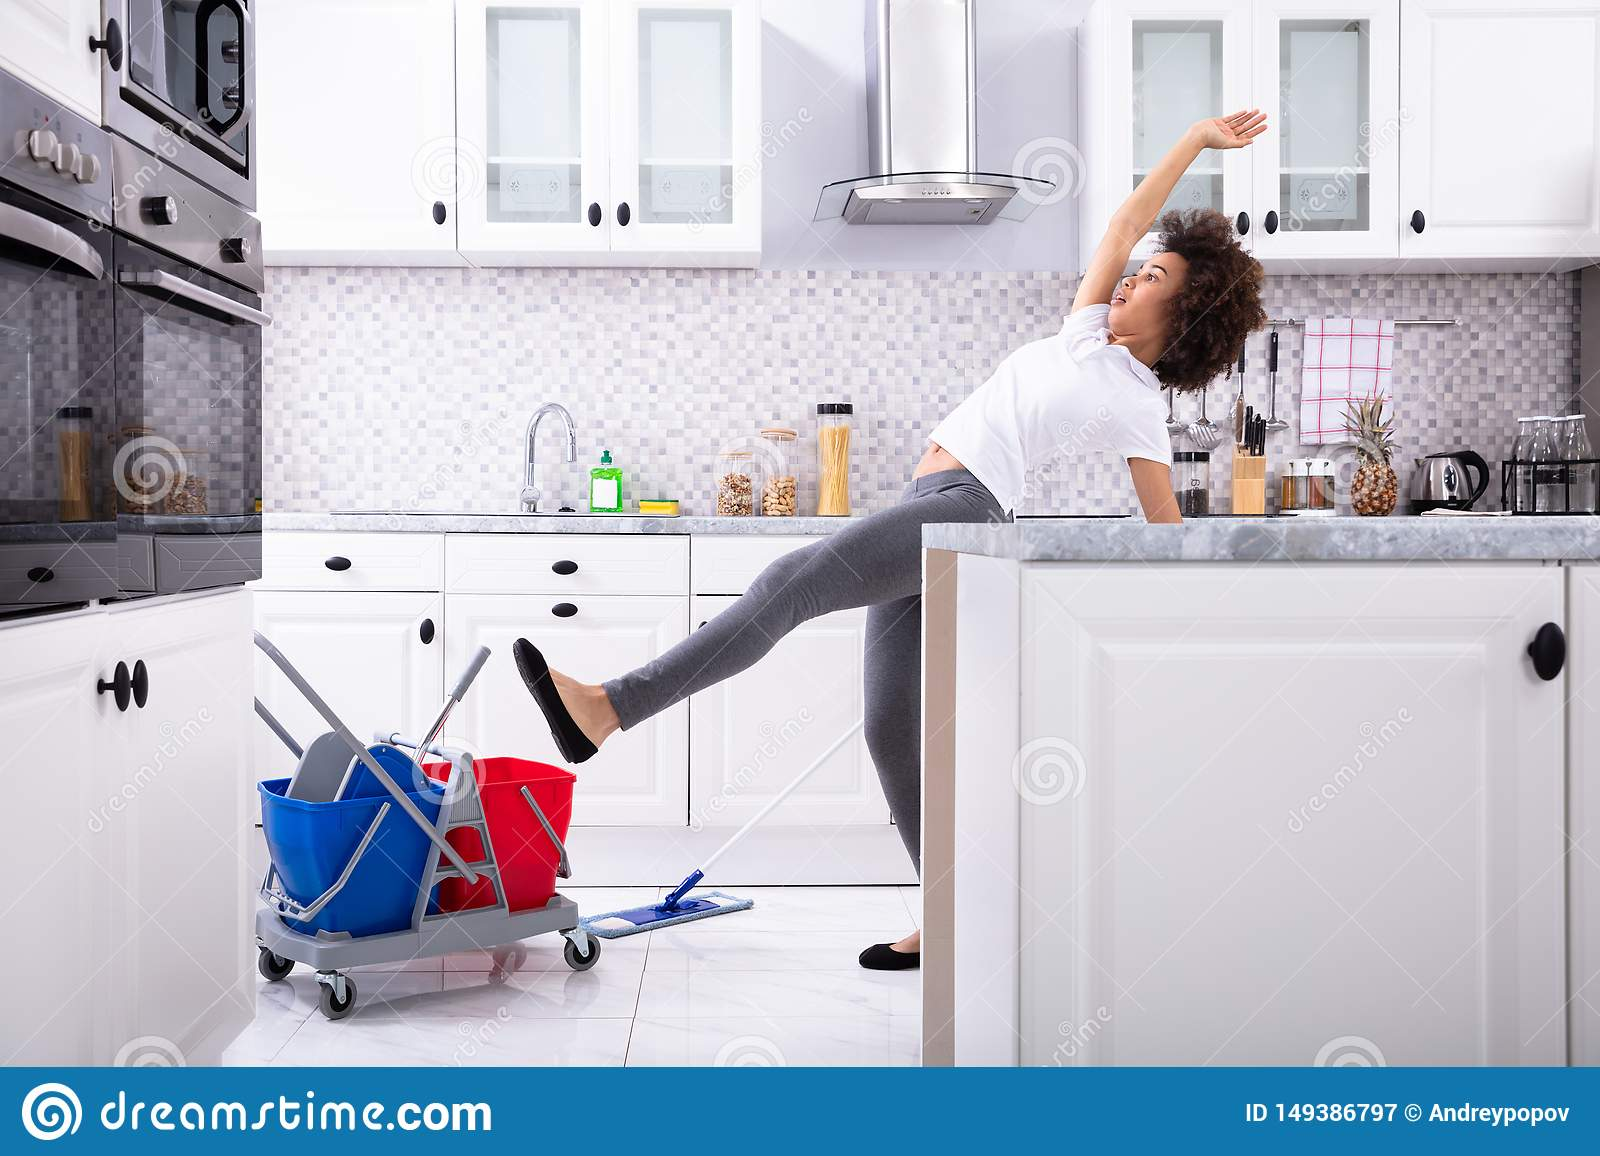 Woman Slipping While Mopping Floor In Kitchen Stock Image   Image ...